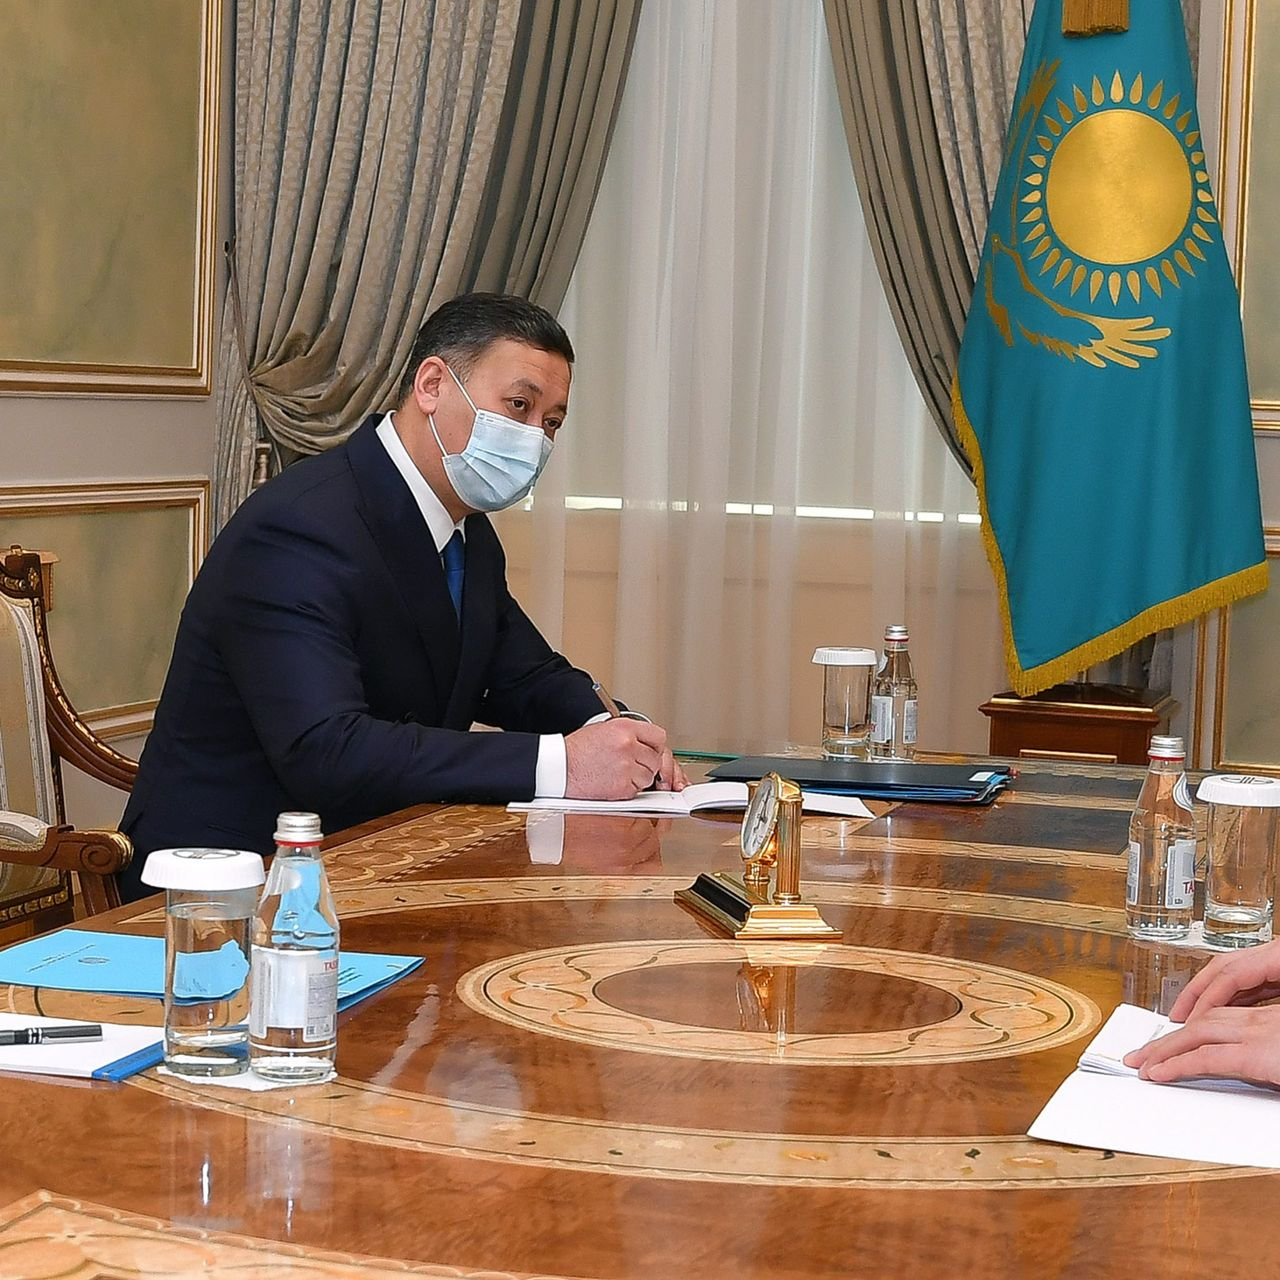 The President receives Kairat Sarybay, Executive Director of the Secretariat of the Conference on Interaction and Confidence Building Measure in Asia